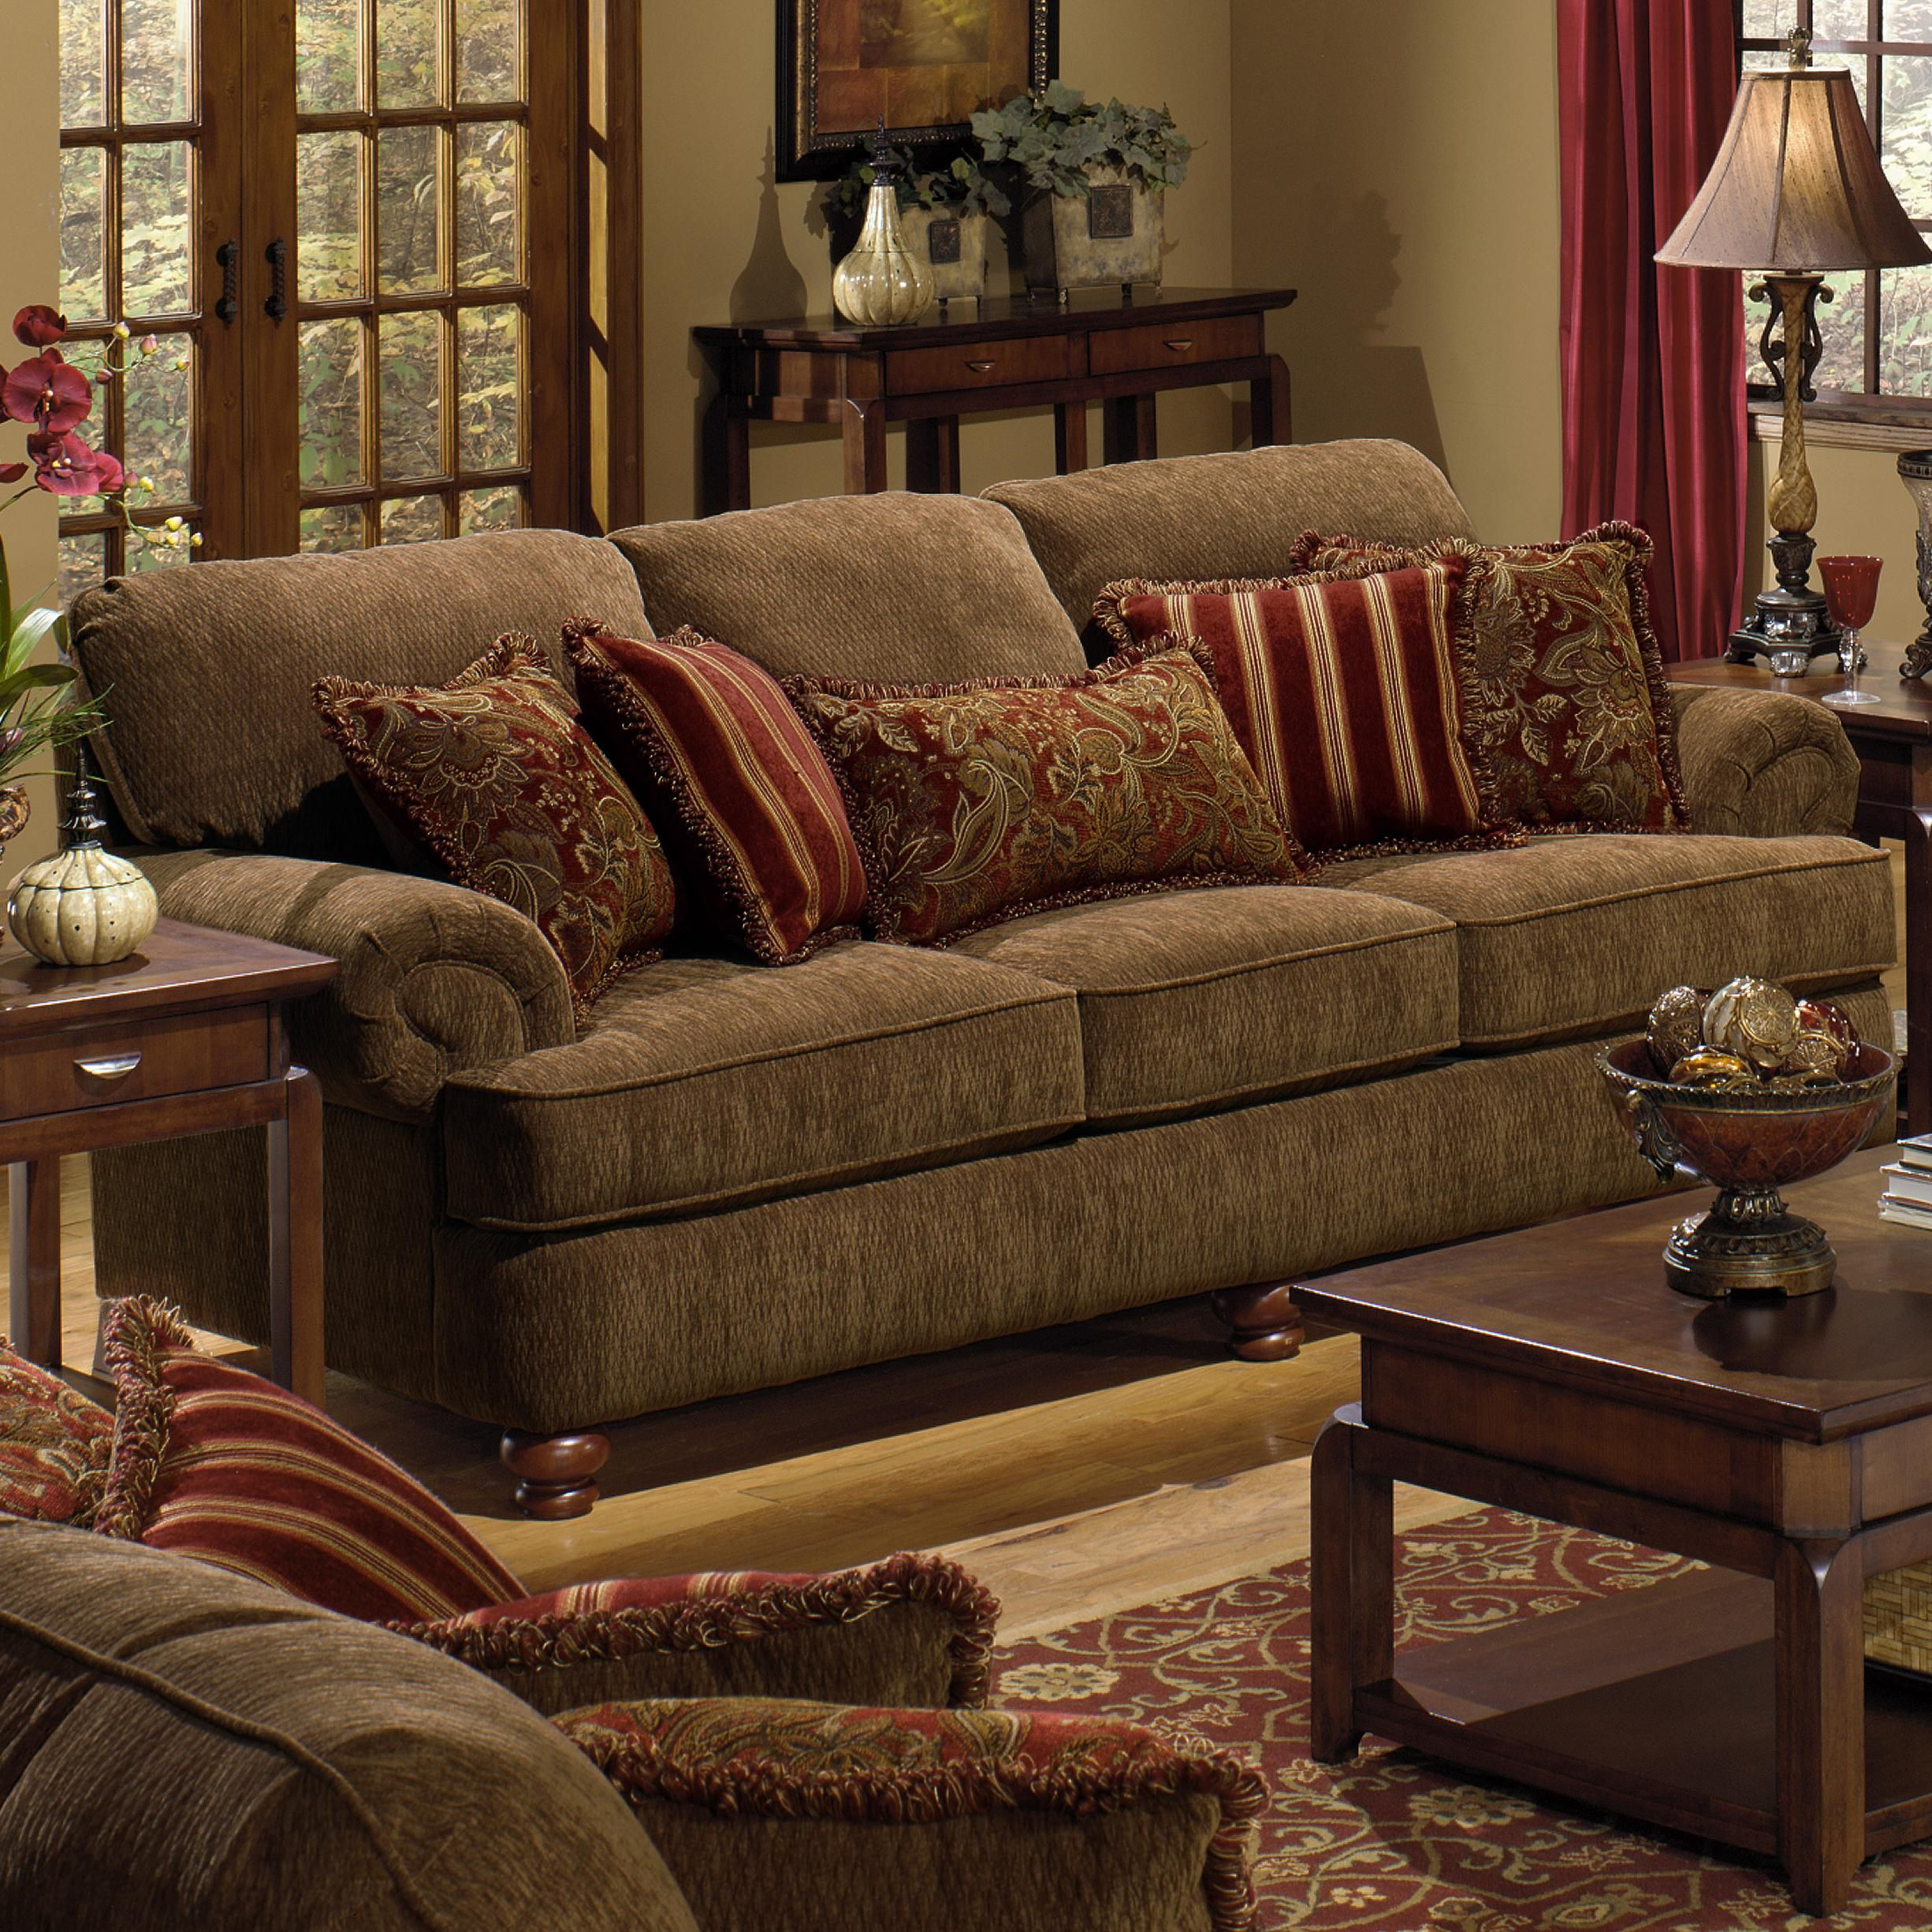 Belmont Sofa With Rolled Arms And Decorative Pillows By Jackson Furniture. Living  Room ...